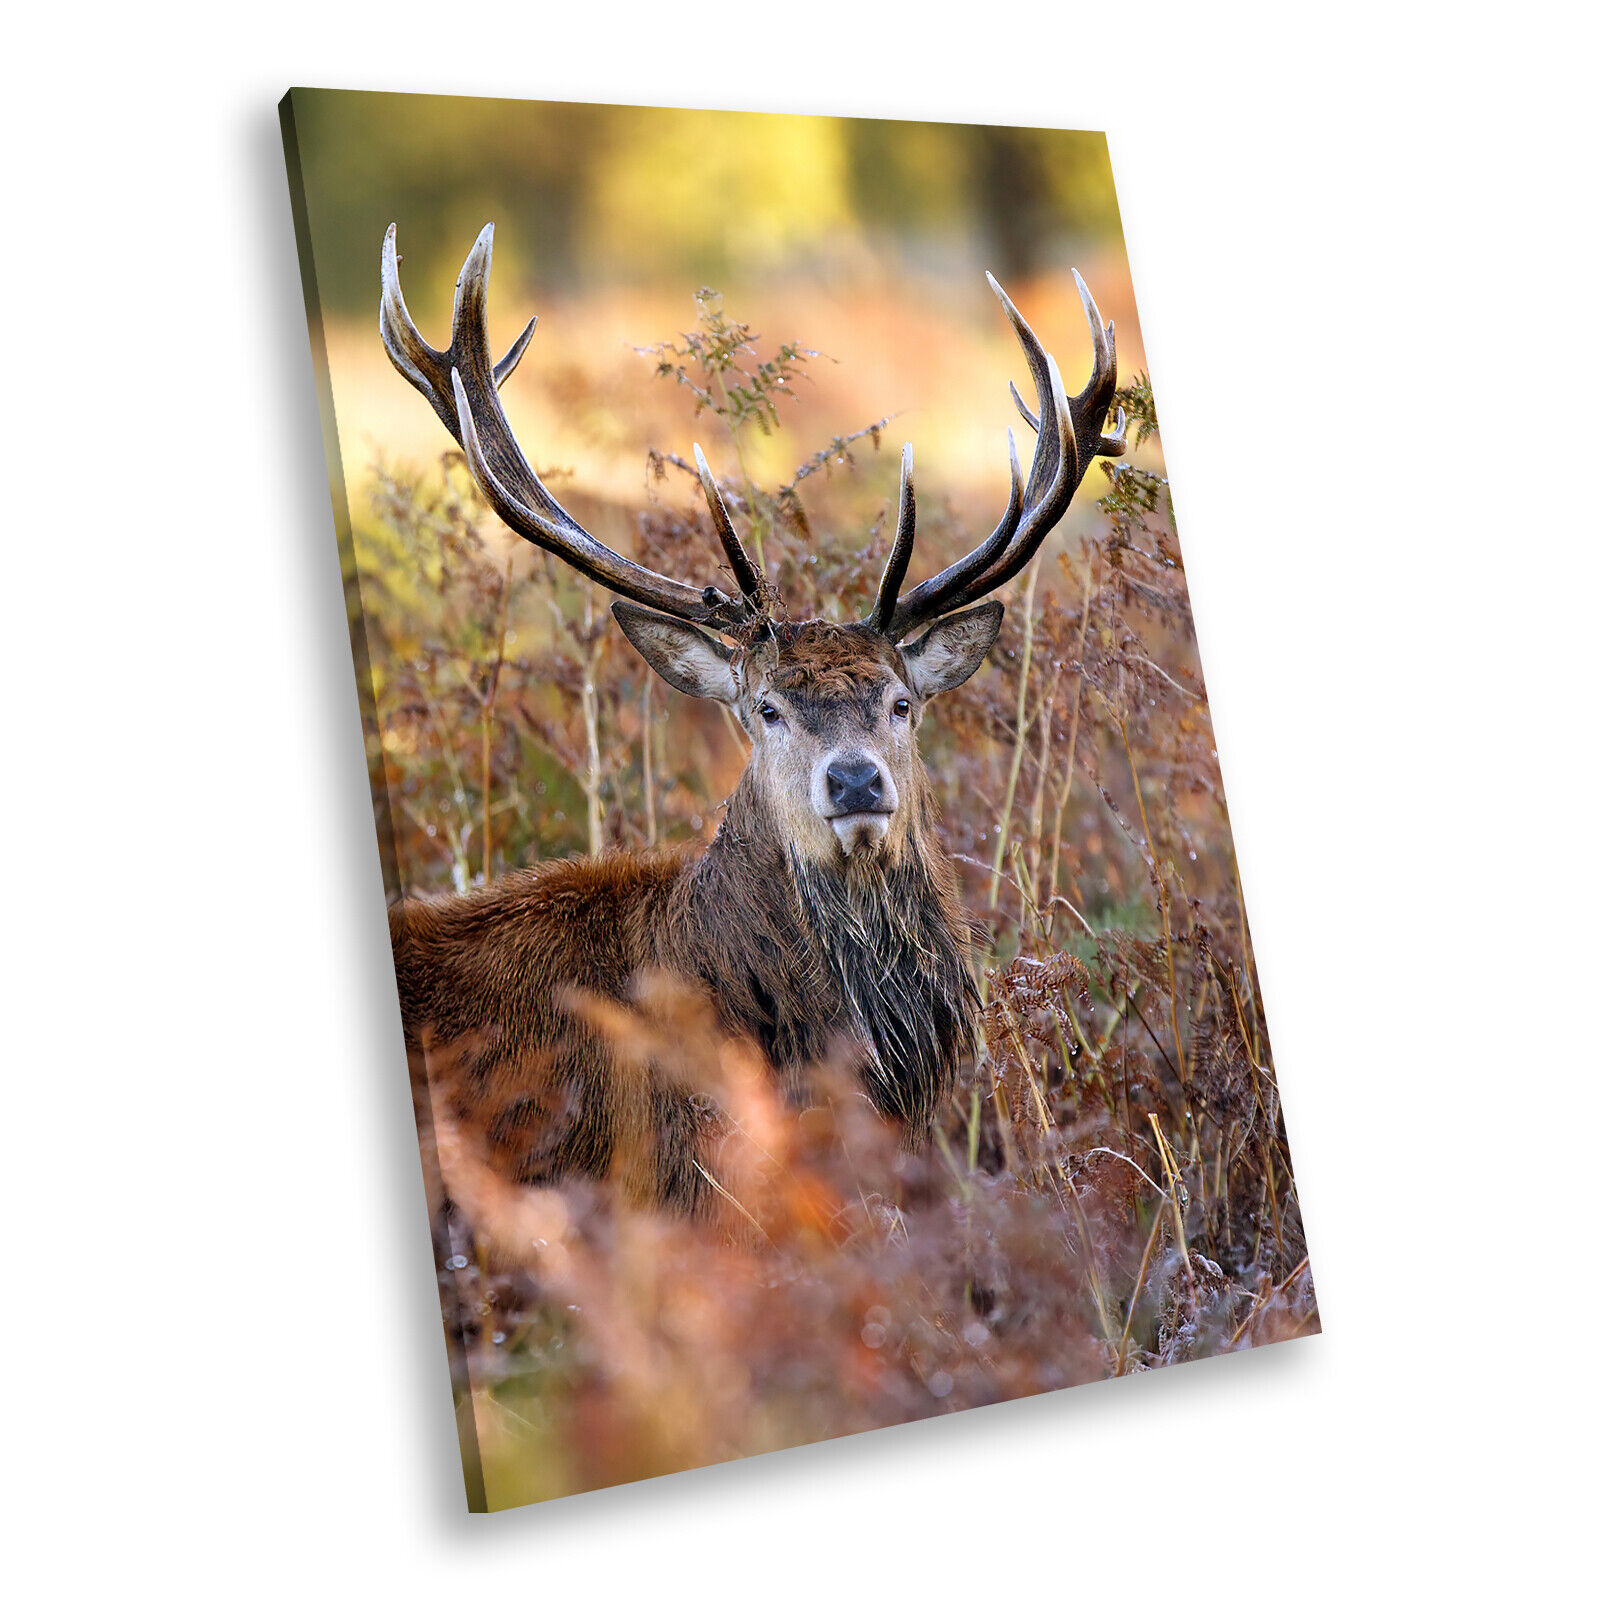 braun Stag Deer Grün  Portrait Animal Canvas Wall Art Large Picture Prints